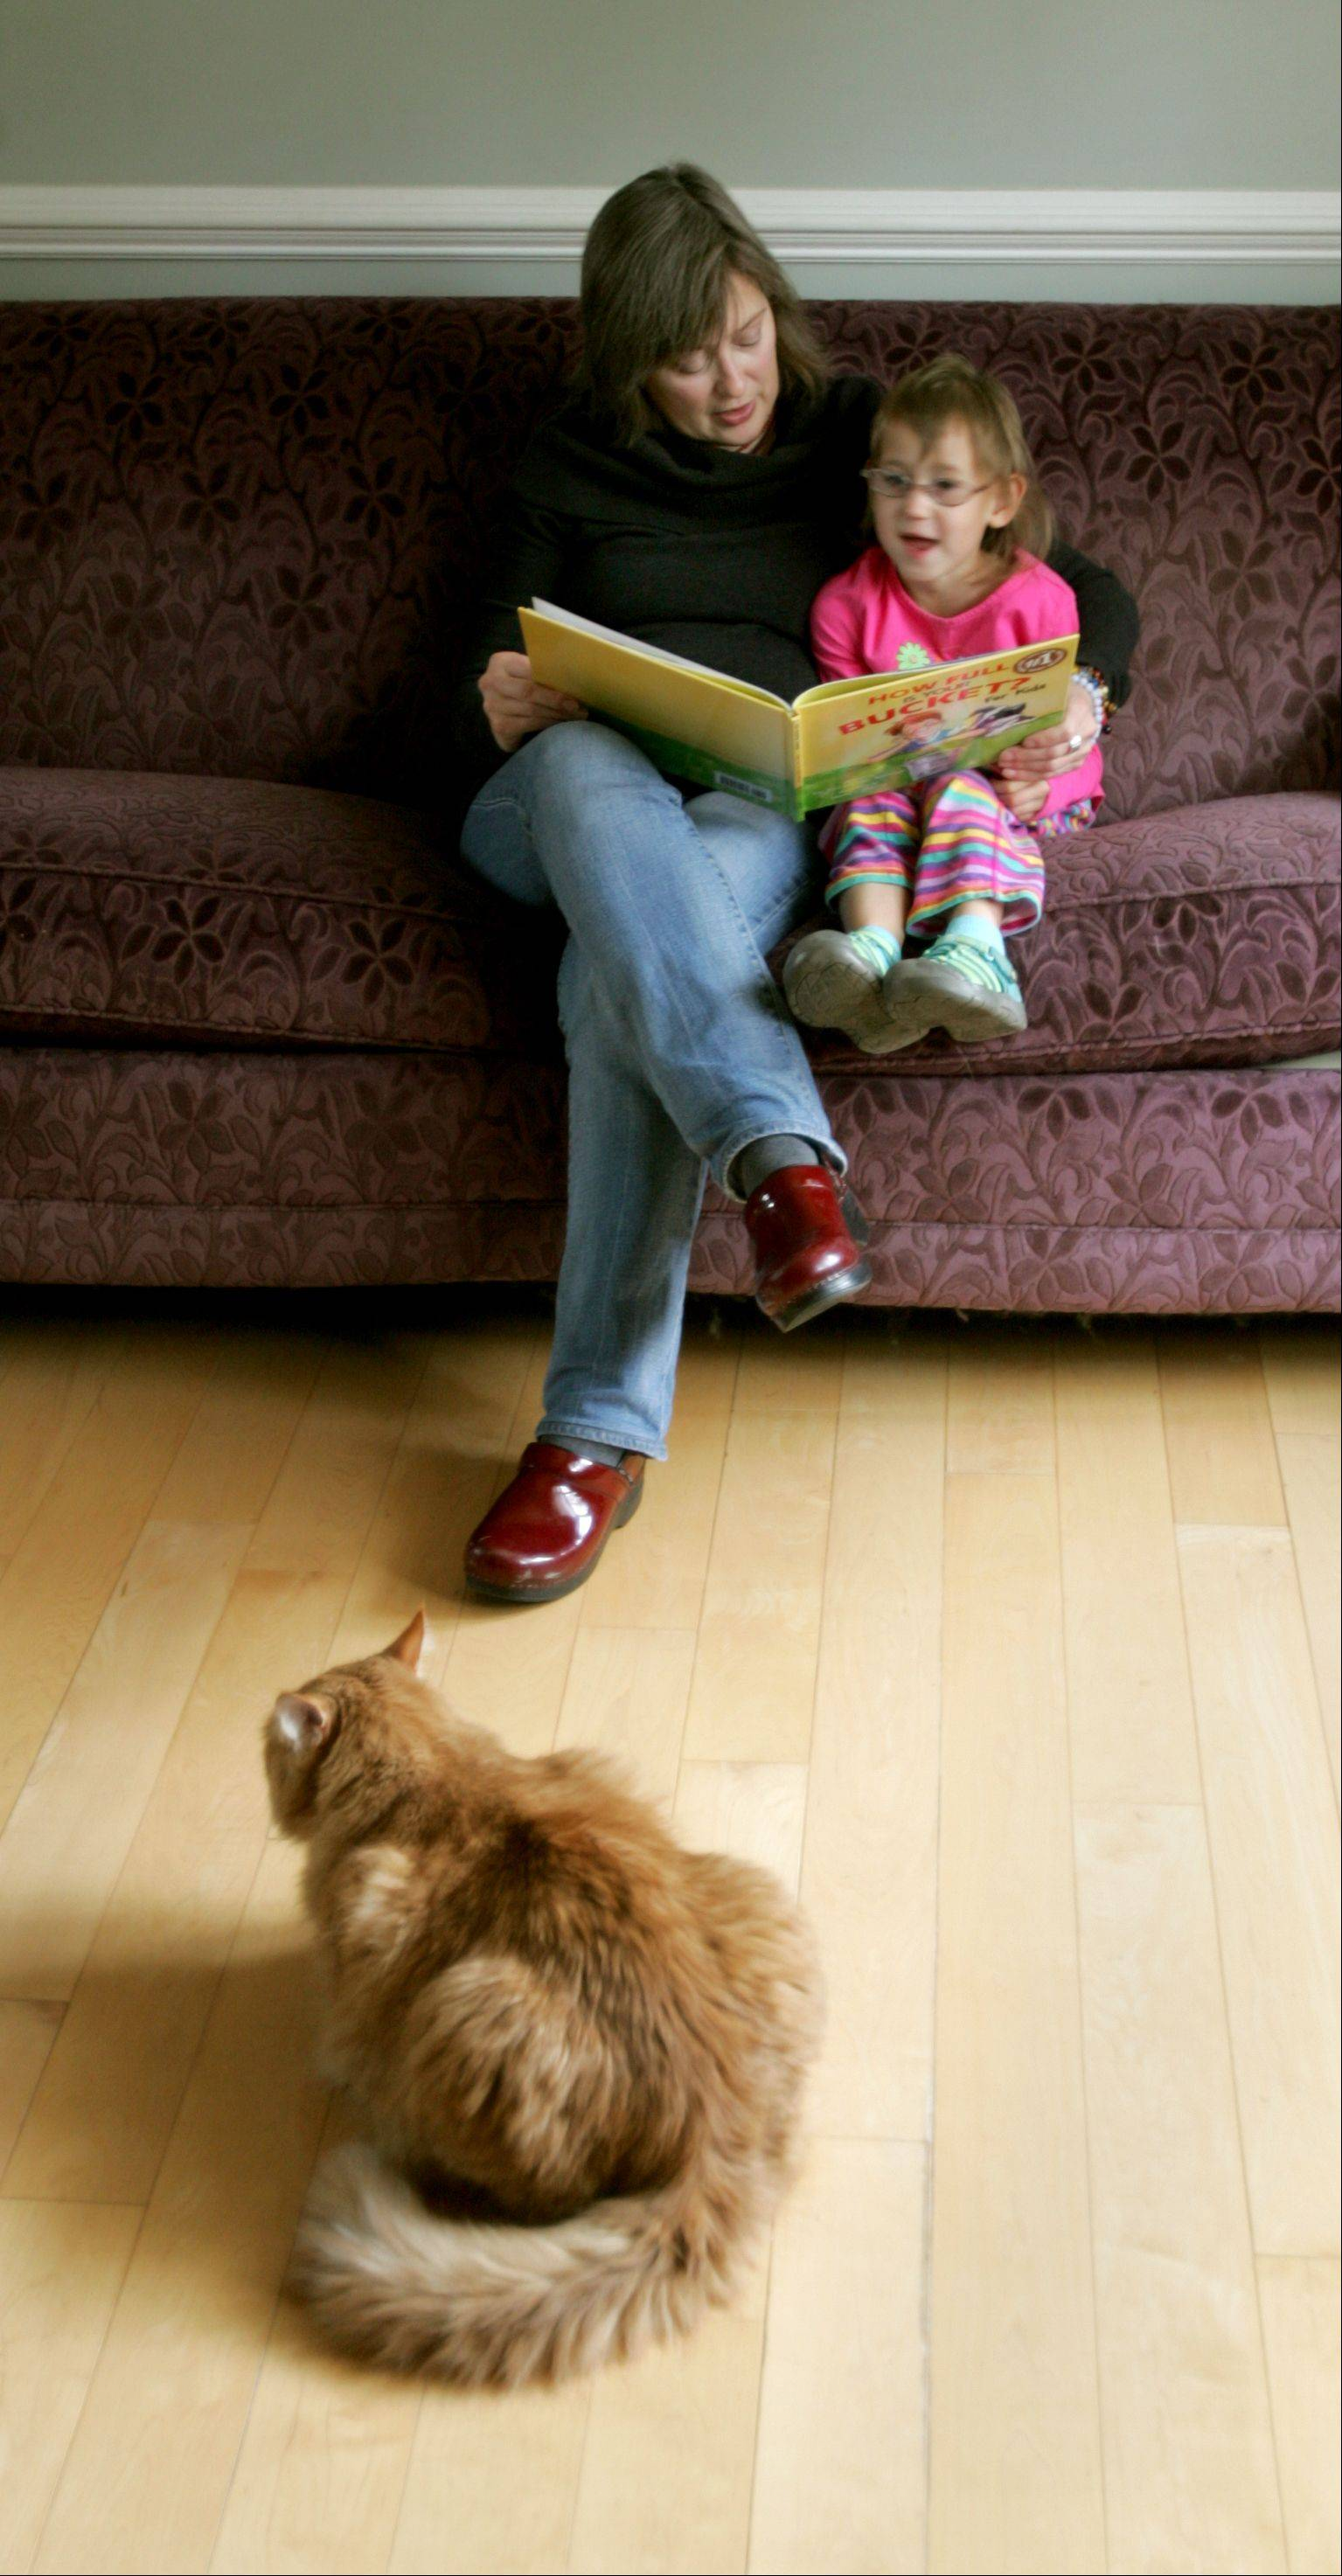 Janet Wagner of Glen Ellyn reads to her 5-year-old daughter Sasha, who was adopted from Russia and has fetal alcohol syndrome.